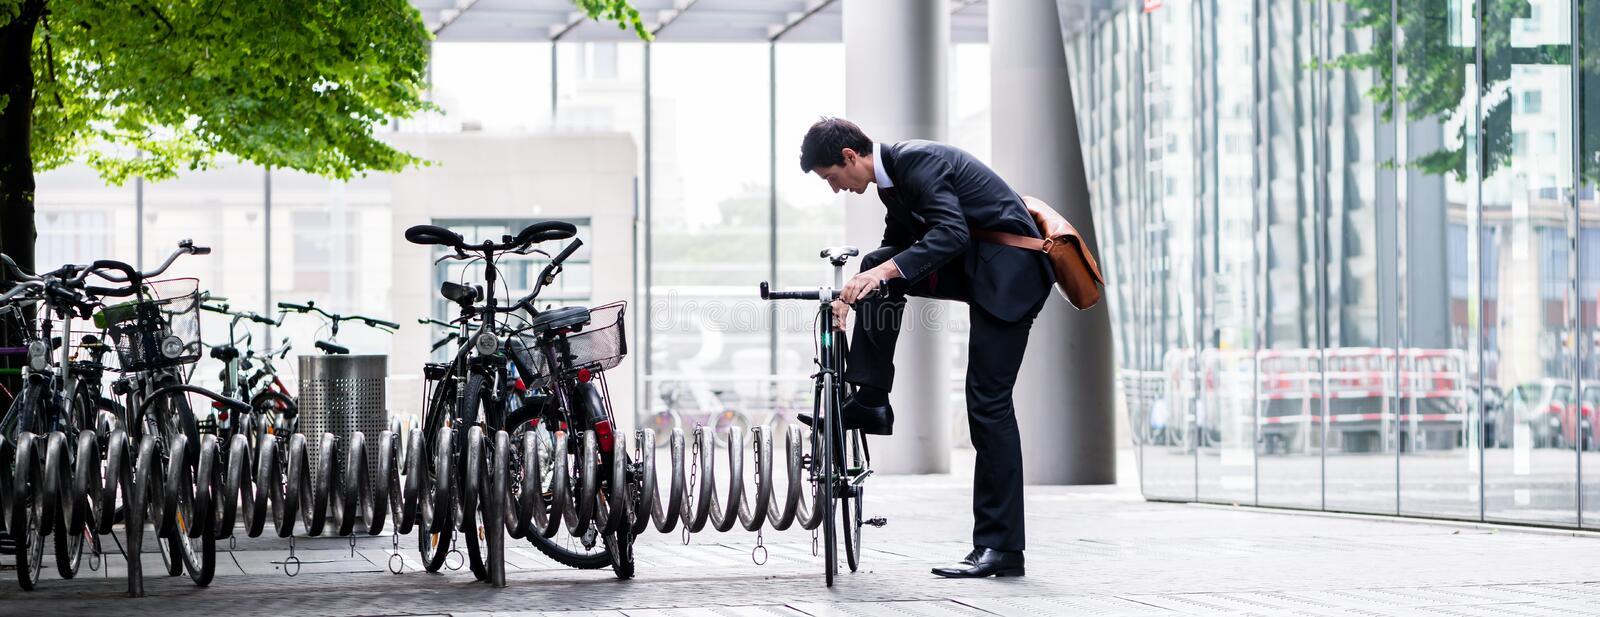 Businessman parking his bicycle in town stock photography